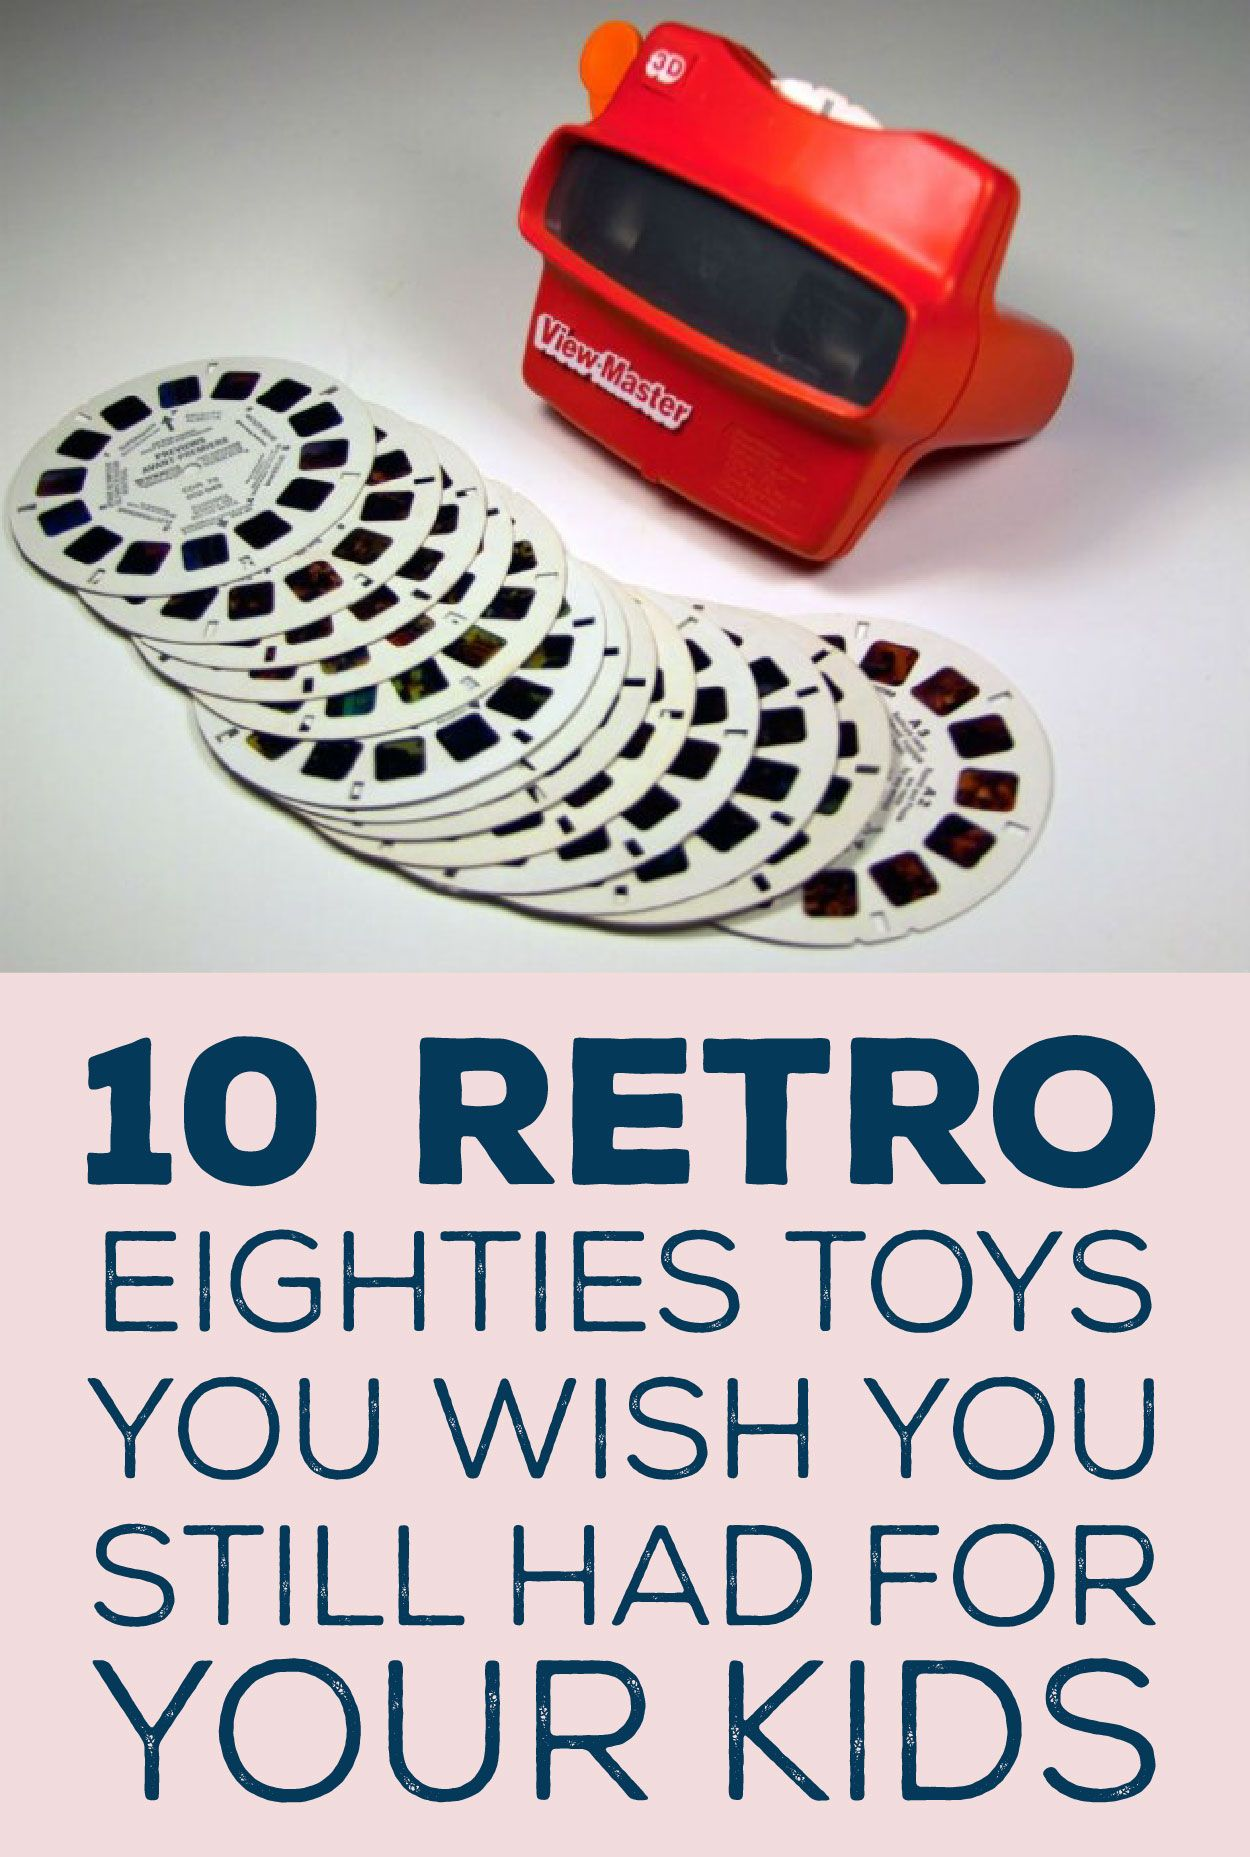 10 Retro Eighties Toys You Wish You Still Had For Your Kids